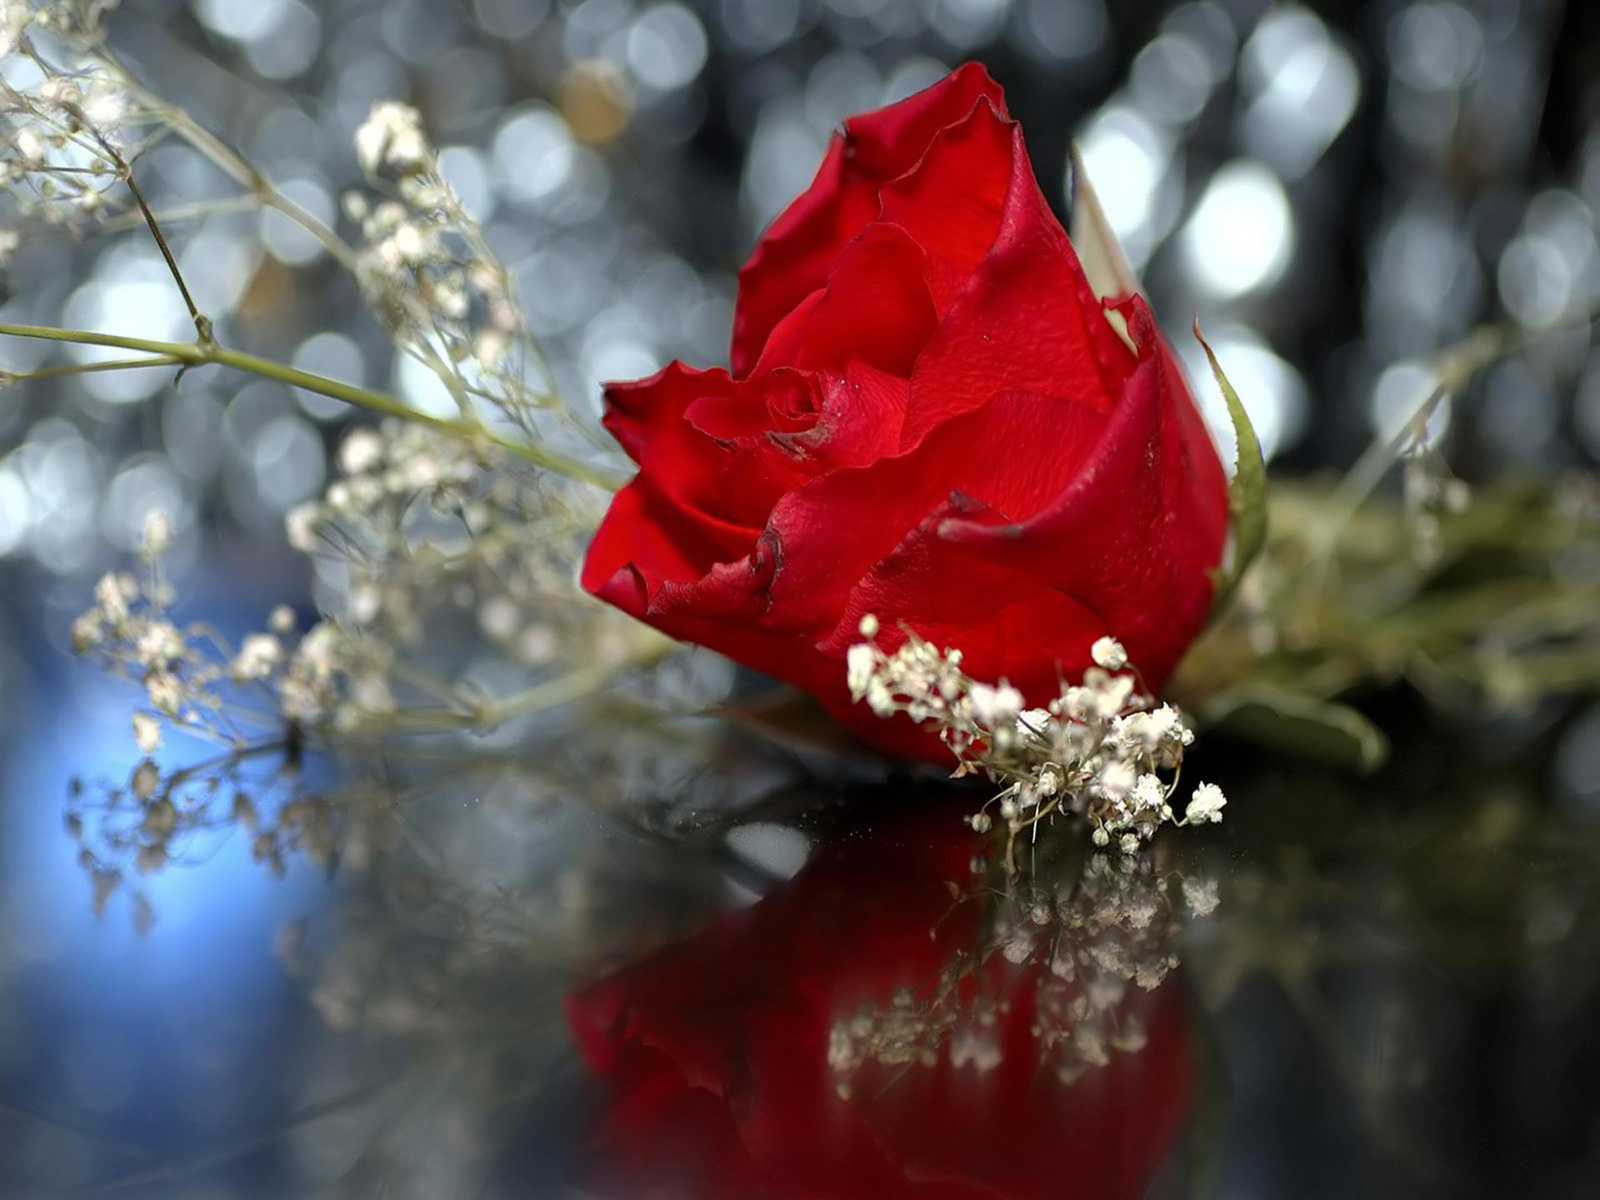 Red rose wallpapers - Red rose flower hd images ...